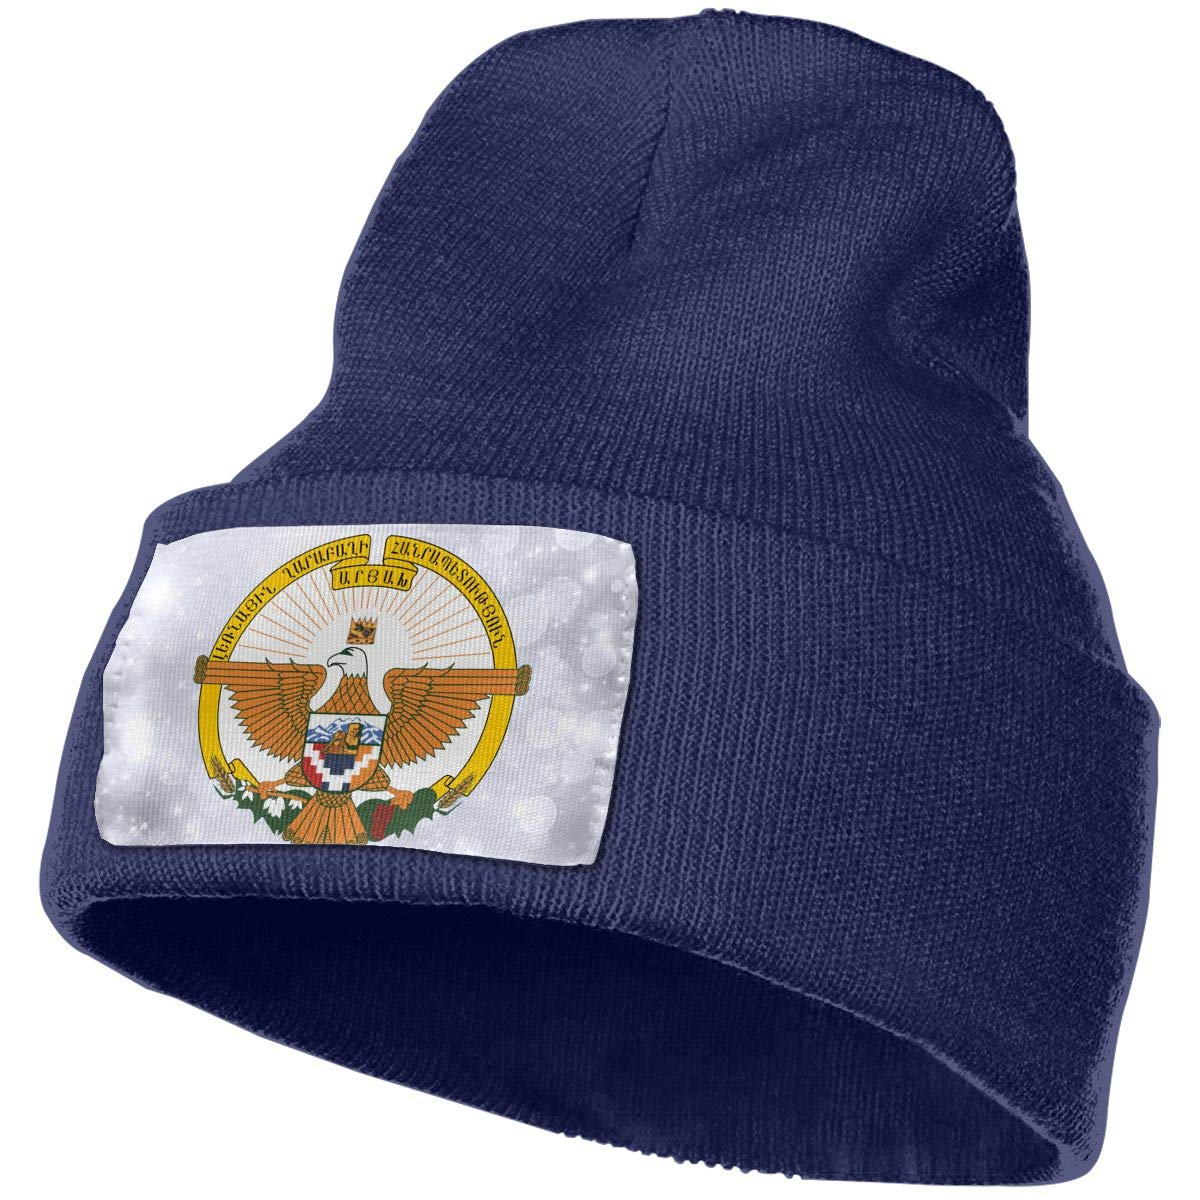 JimHappy Coat of Arms of Artsakh Hat for Men and Women Winter Warm Hats Knit Slouchy Thick Skull Cap